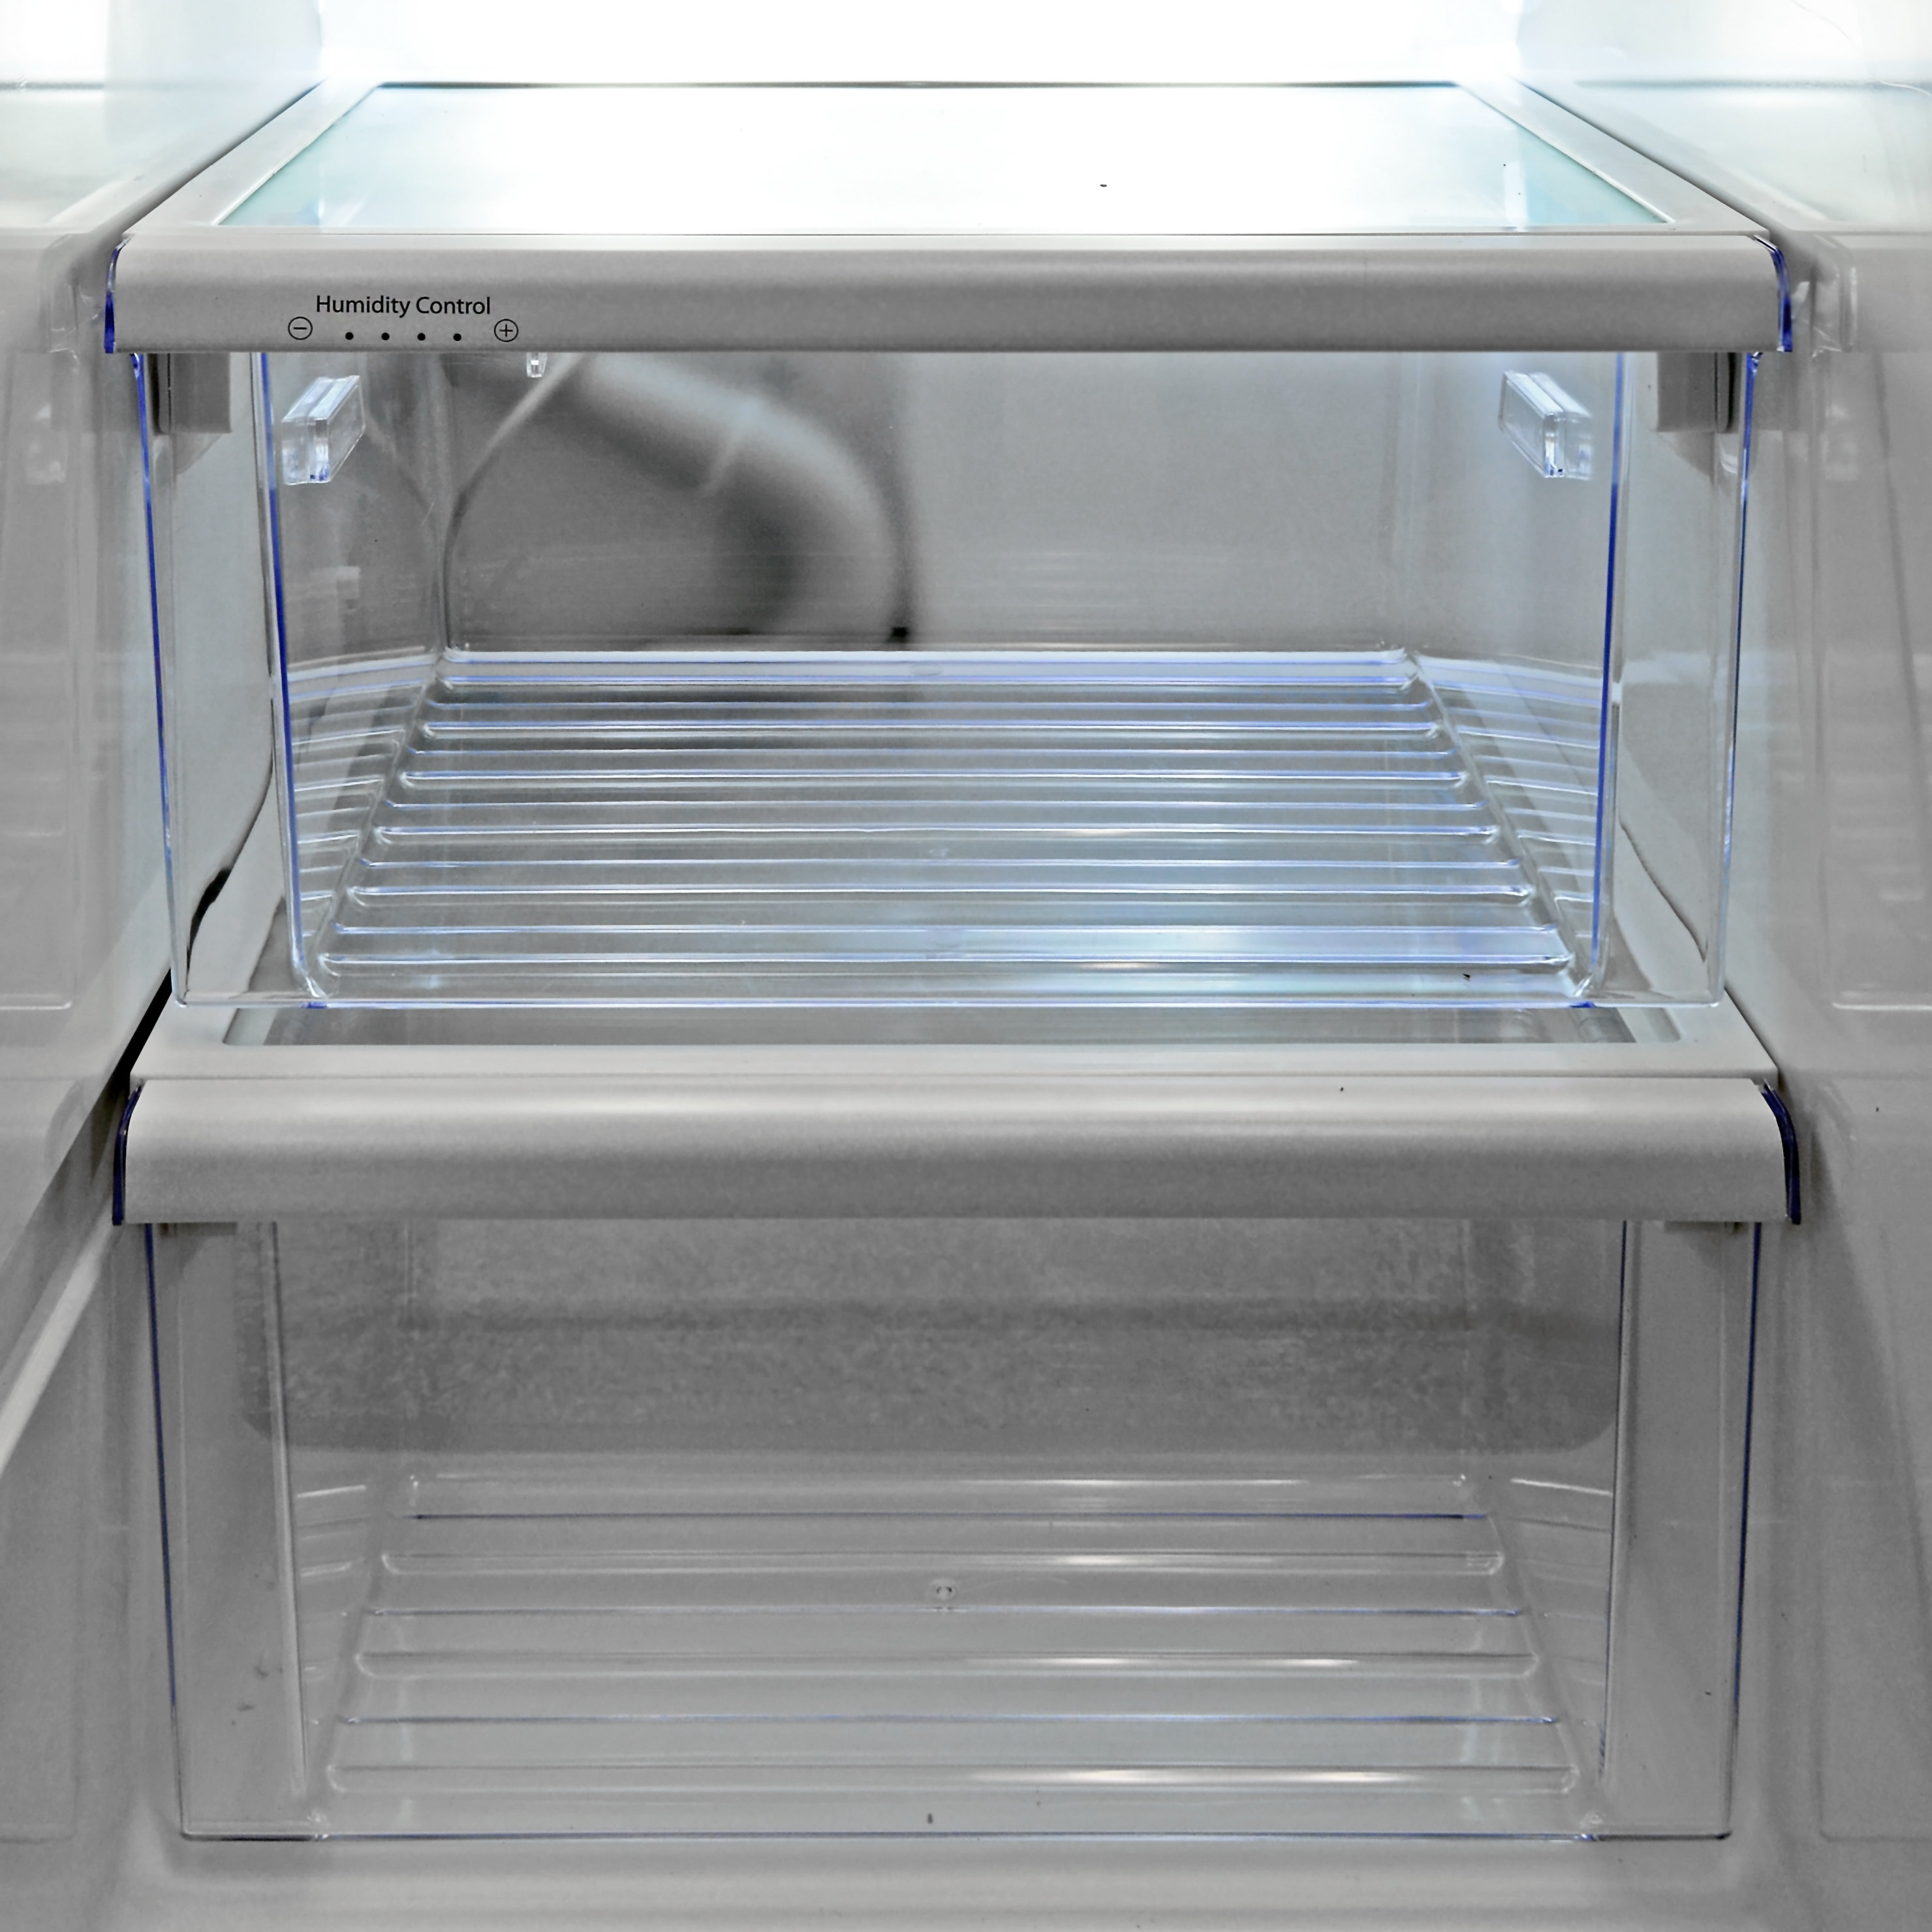 The Whirlpool WRS571CIDM's lone adjustable crisper was decidedly mediocre.